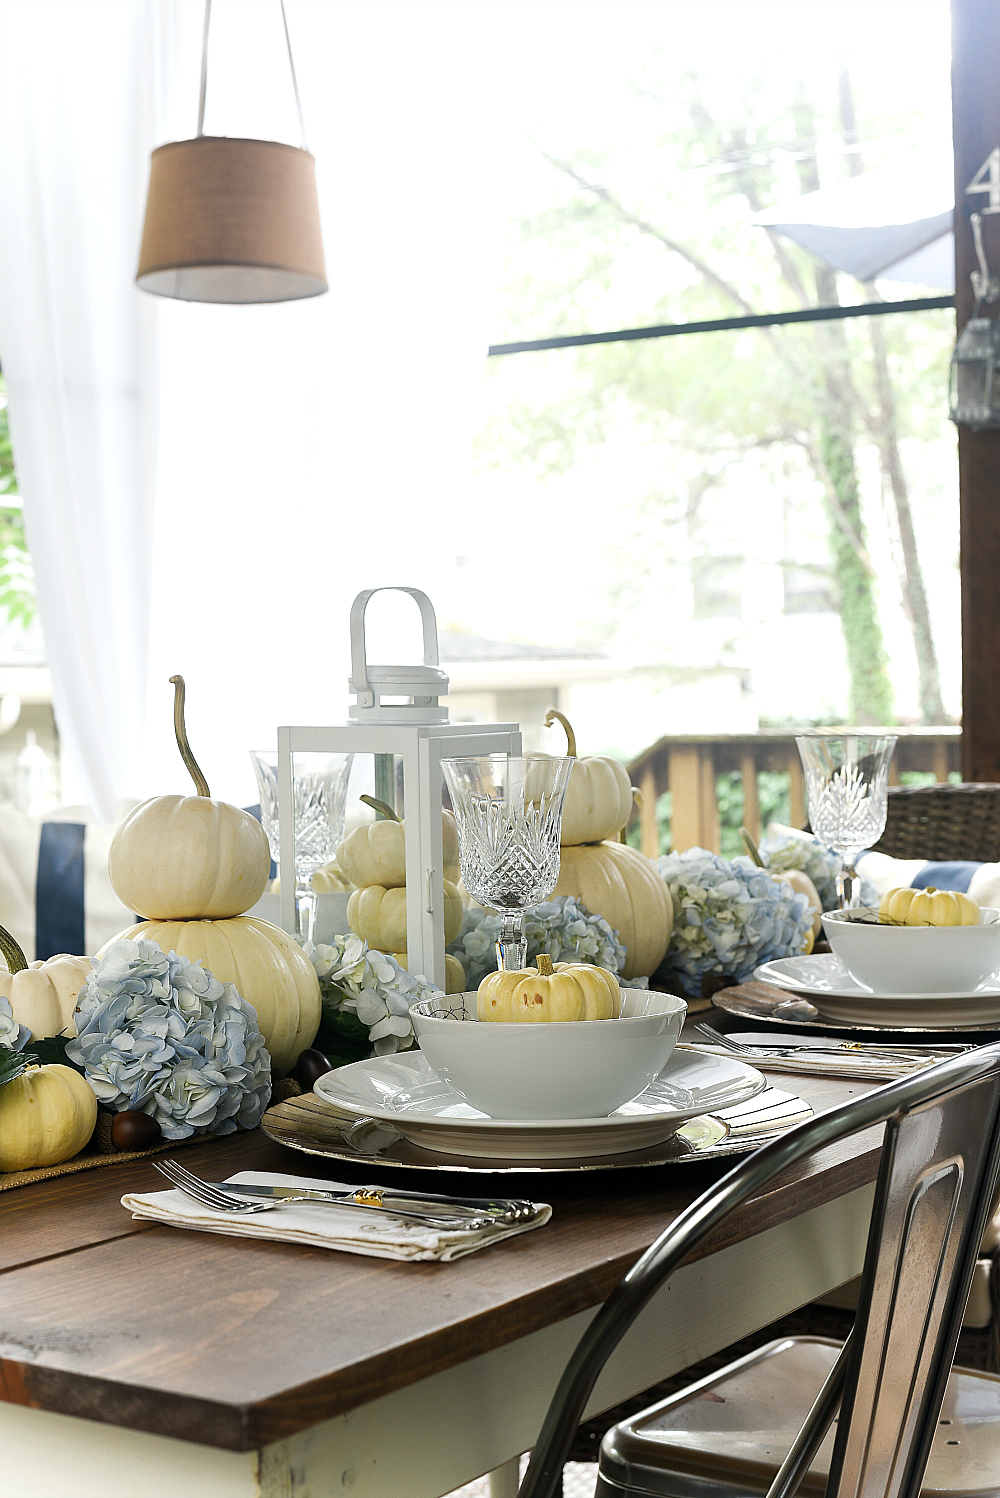 Our Homes Value Is Not In The Structure But Land Upon Which It Sits Pumpkin And Hydrangea Centerpiece